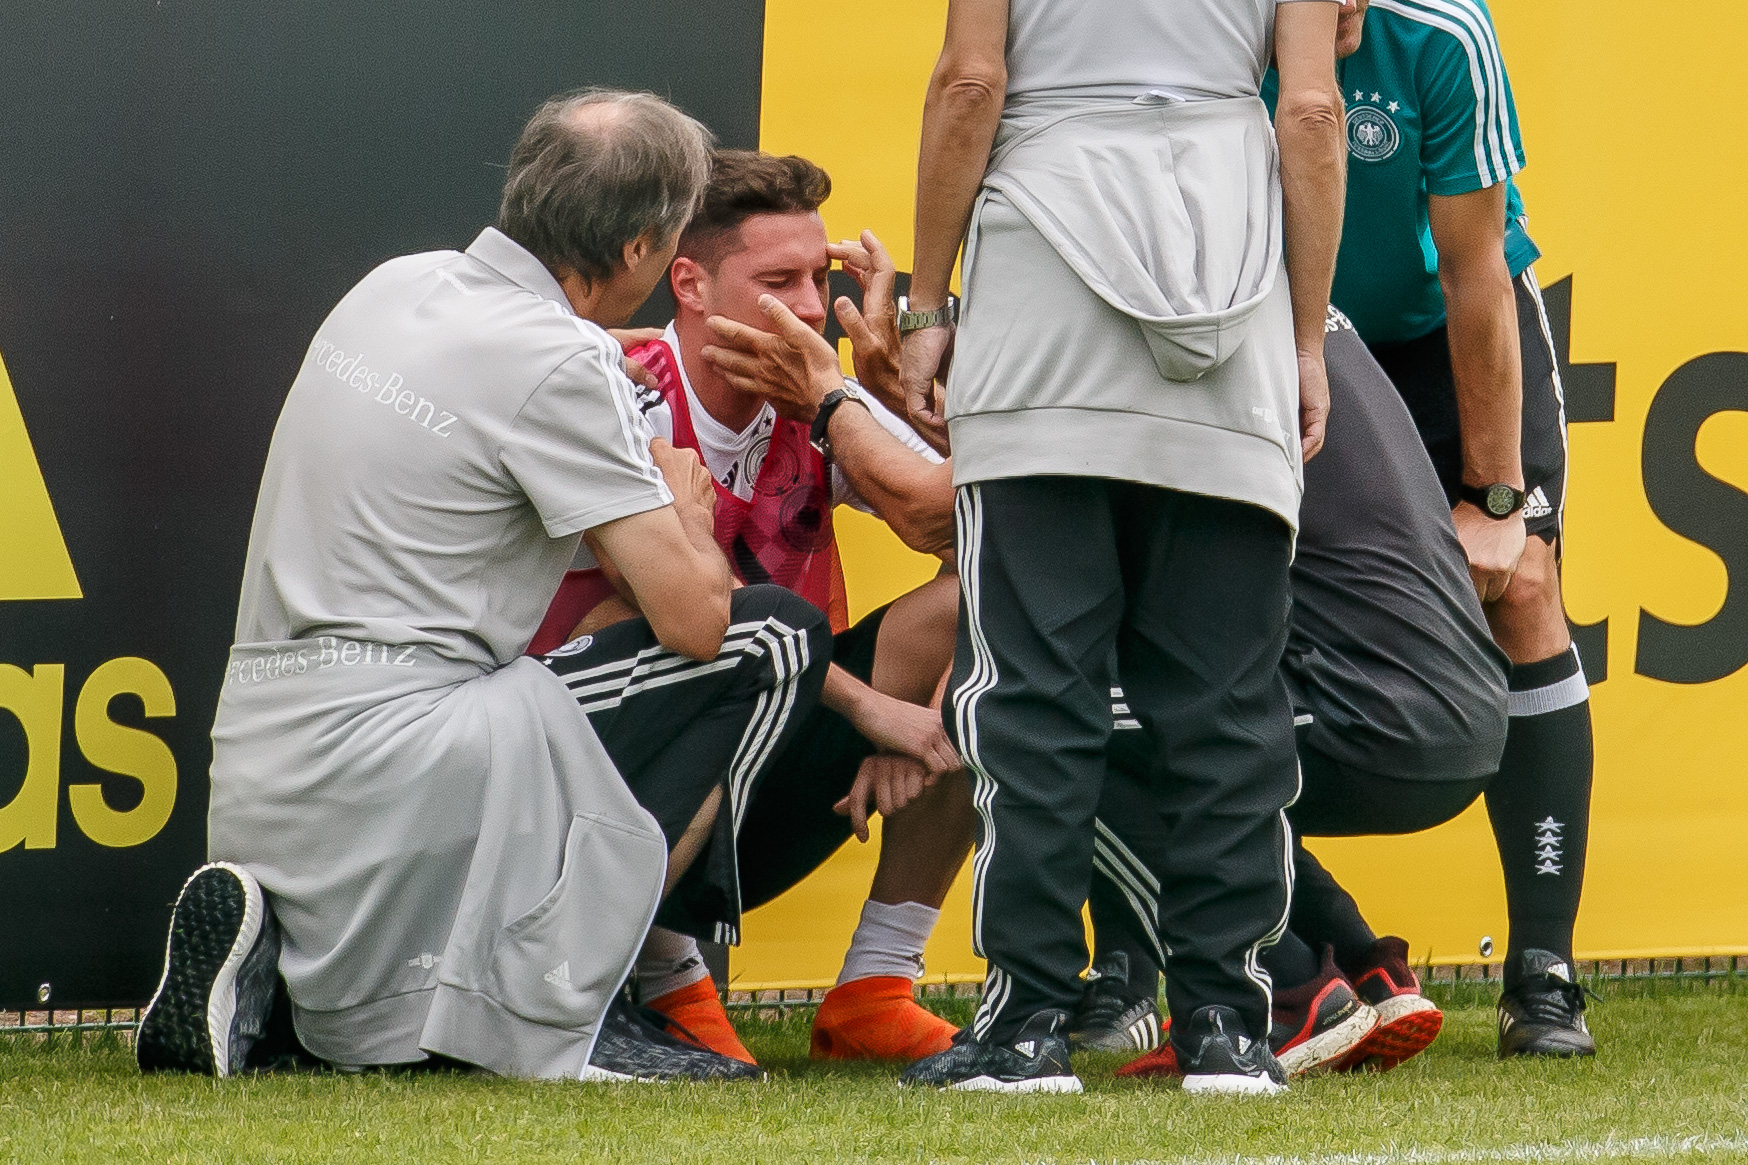 Germany - Southern Tyrol Training Camp Day 7 BOLZANO, ITALY - MAY 29: Julian Draxler of Germany receives medical help during day seven of the Southern Tyrol Training Camp on May 29, 2018 in Eppan, Italy.